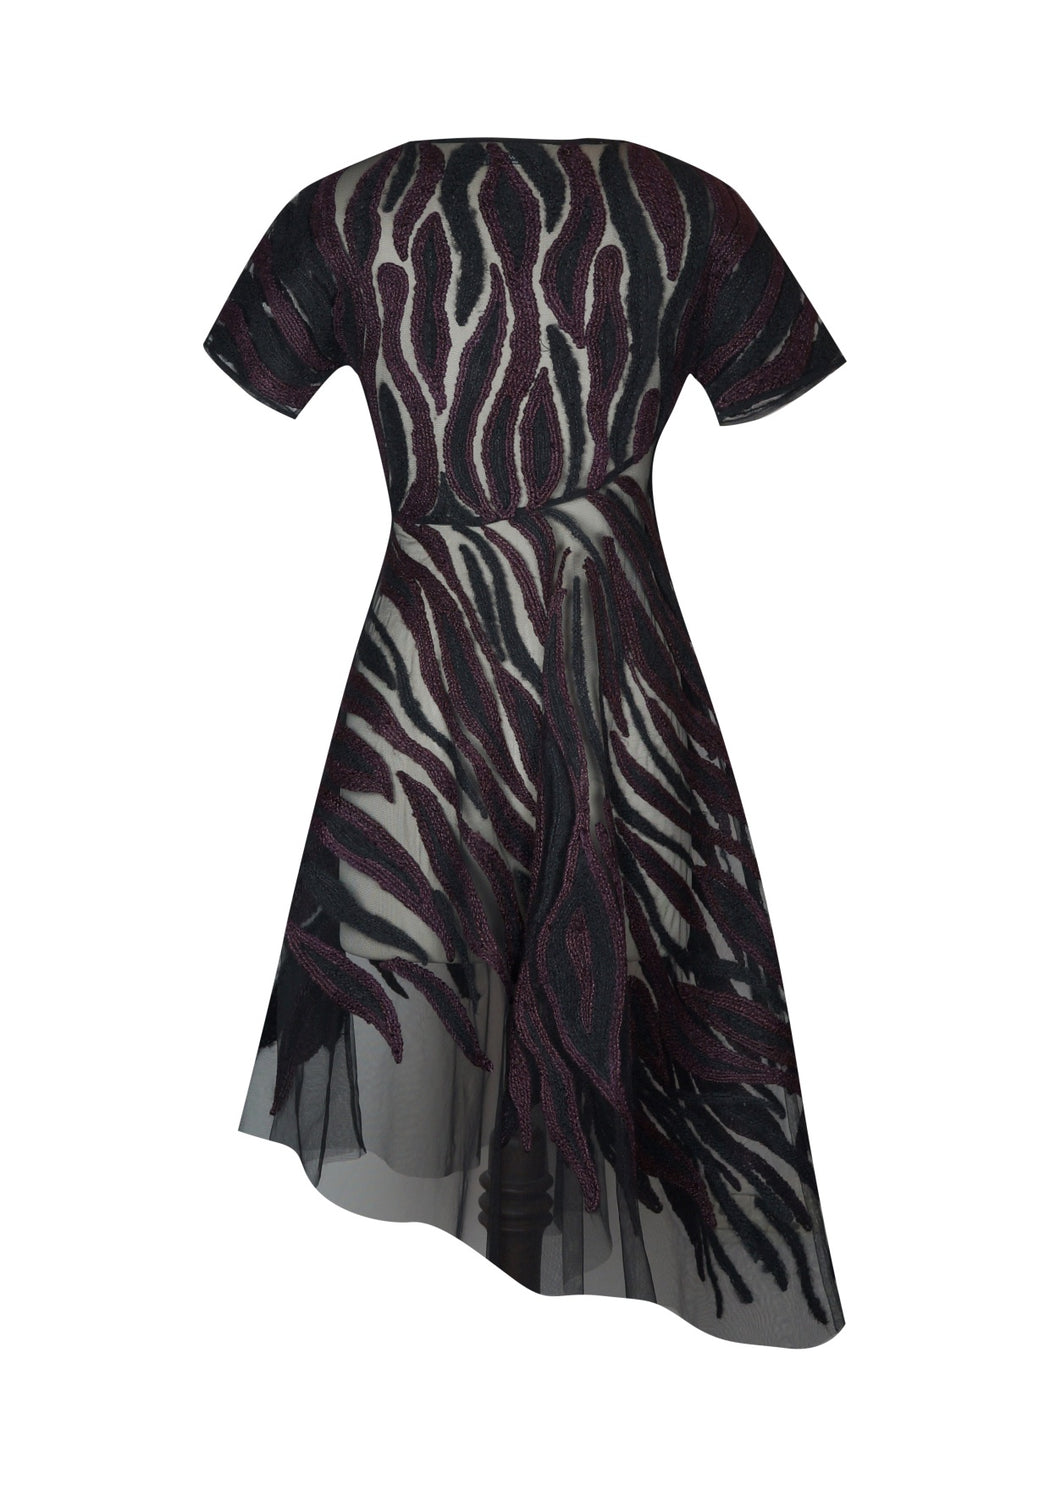 BIRDWALK HAND EMBROIDERED ASYMMETRIC DRESS